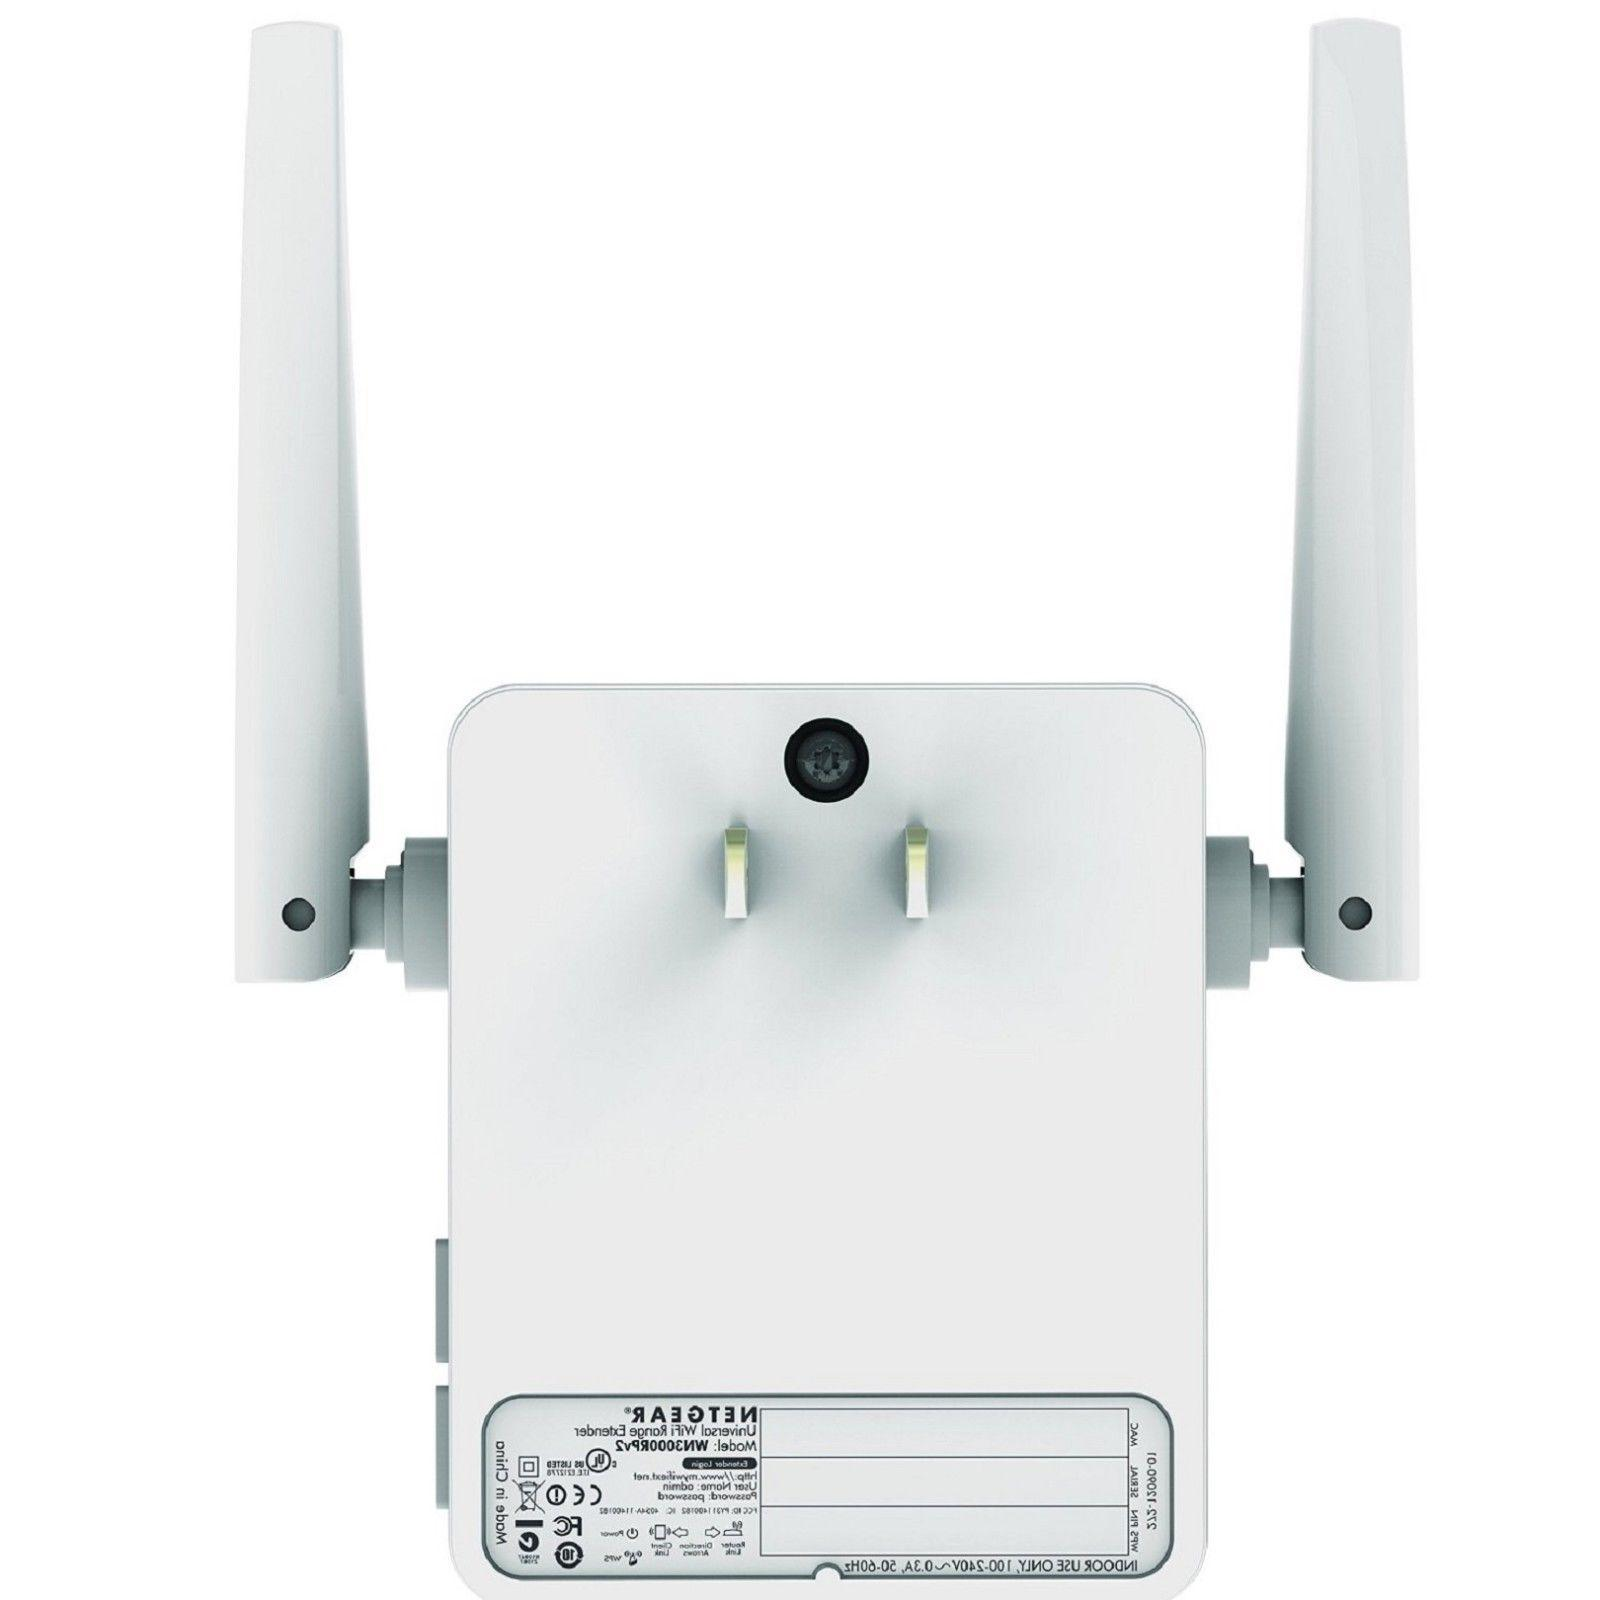 Wireless Signal NEW